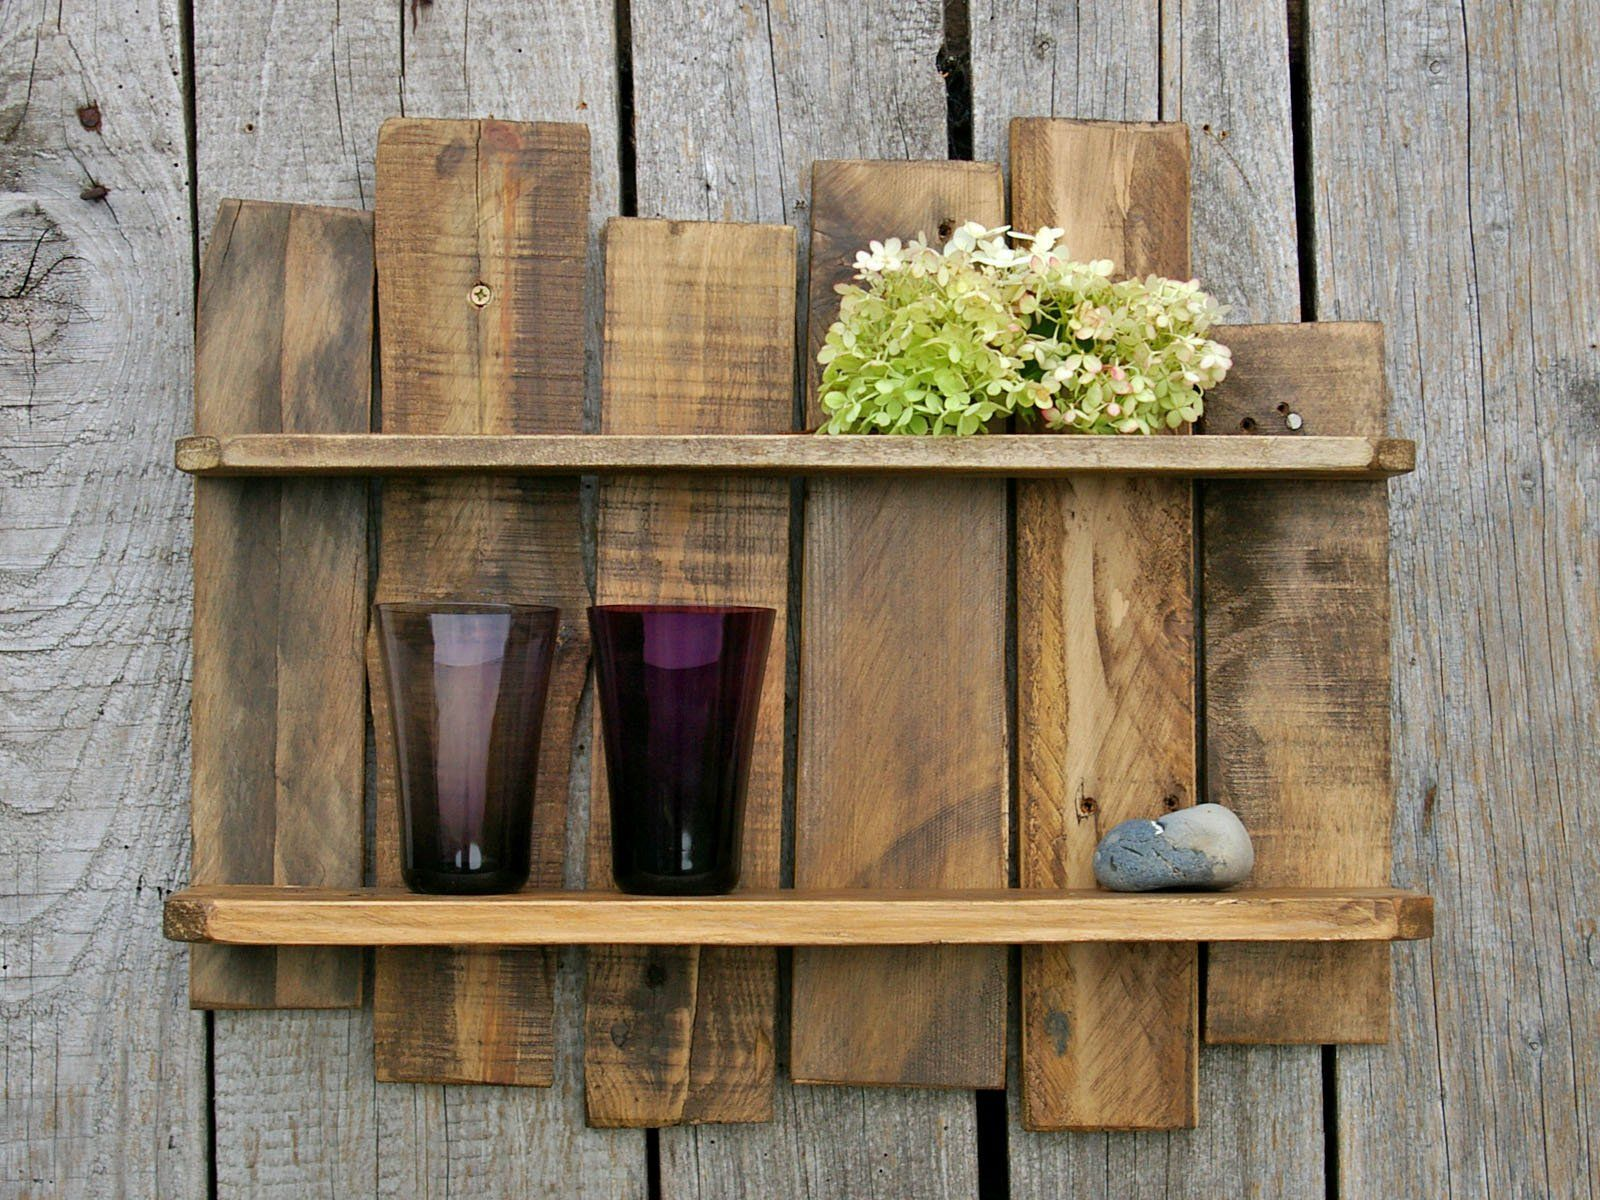 Kleine Holzregale Shelf Made Of Pallet Timber Palettenholzregal Wooden Shelf Waxed